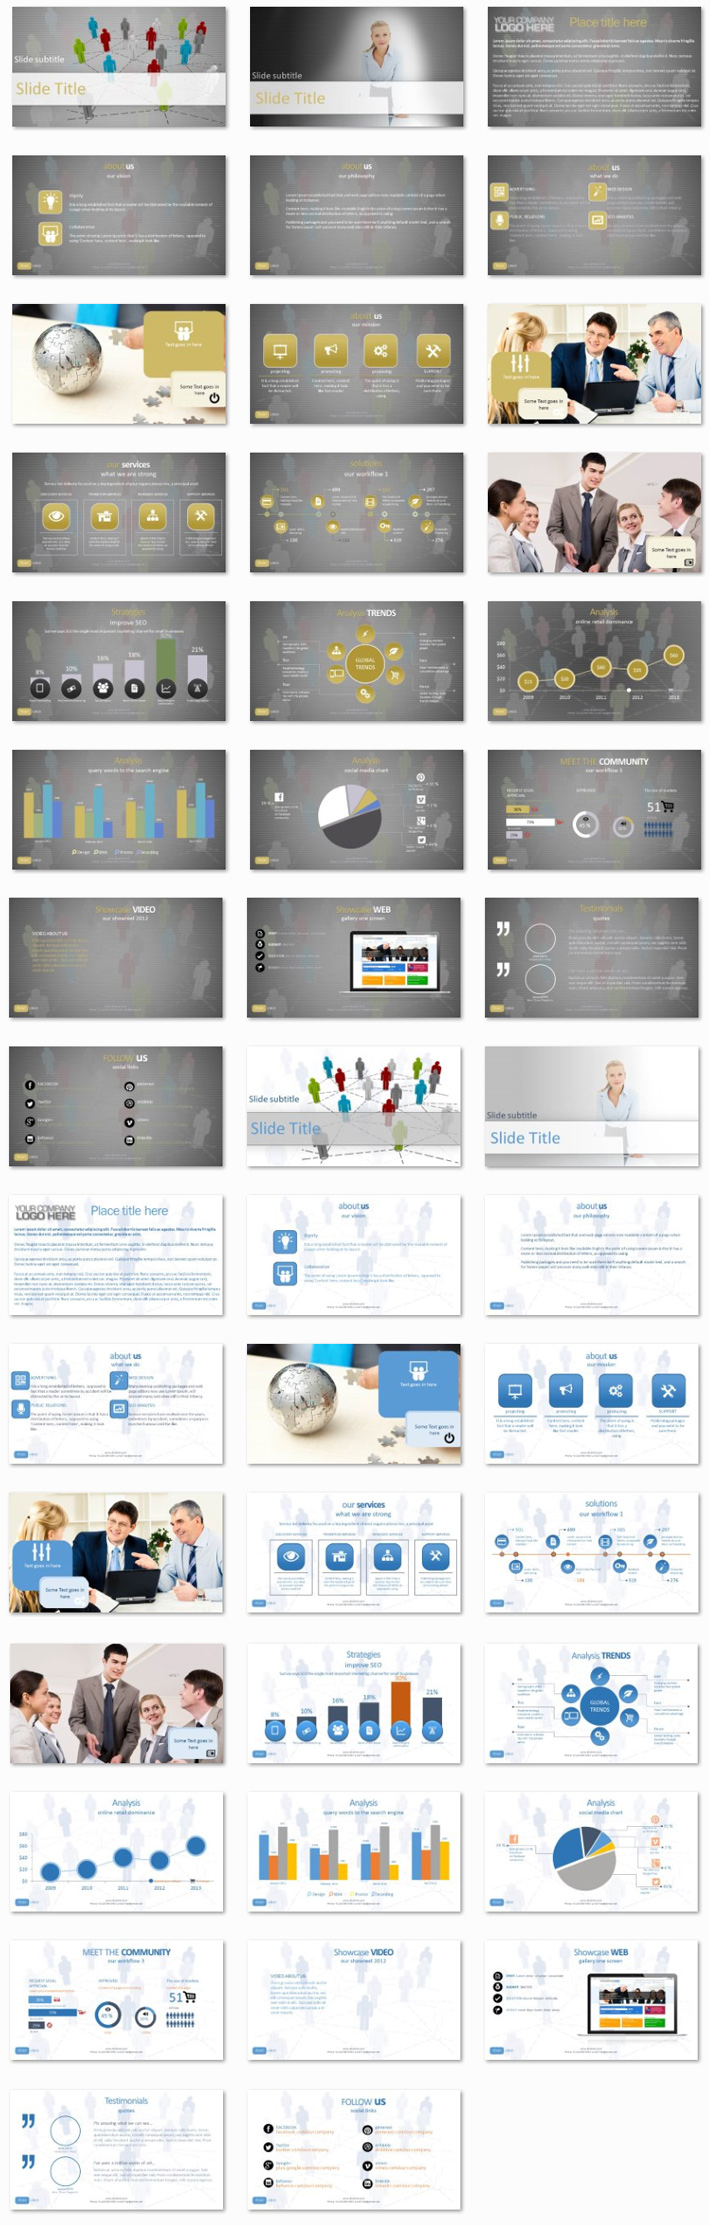 Power Presentation: Abstract People PPT Premium PowerPoint Presentation Template Slide Set